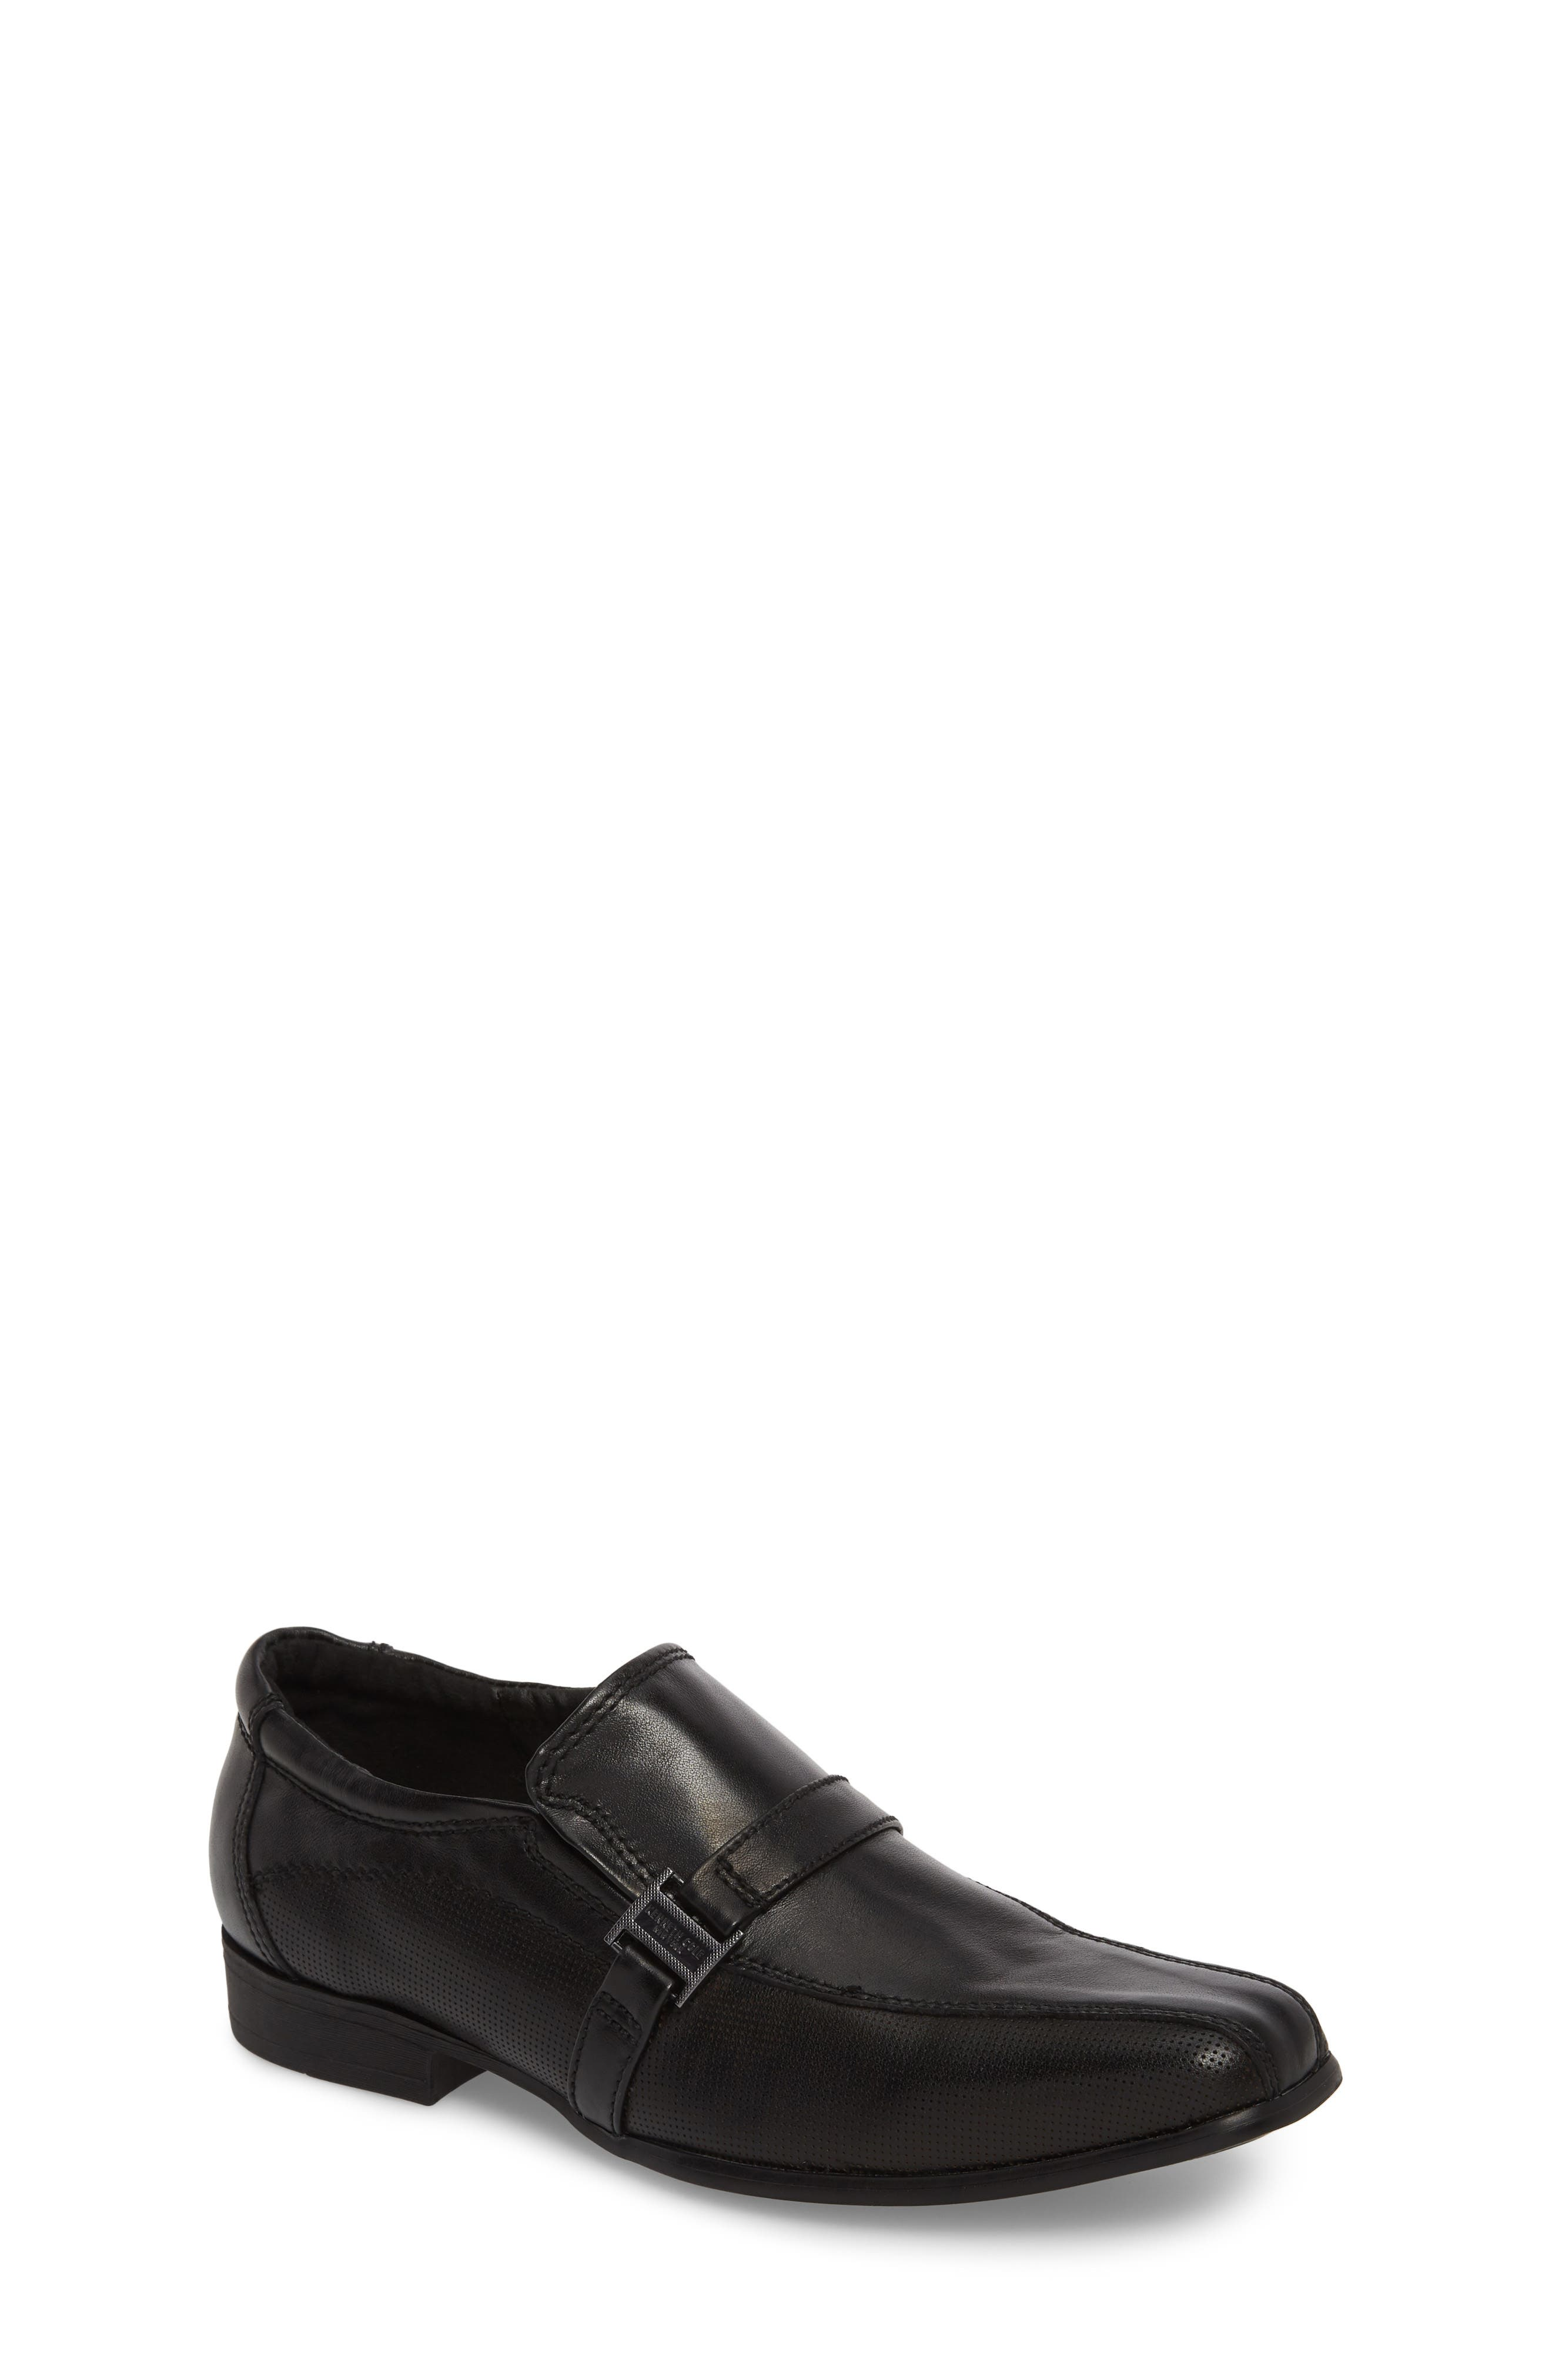 Kenneth Cole New York Magic News Venetian Loafer (Toddler, Little Kid & Big Kid)